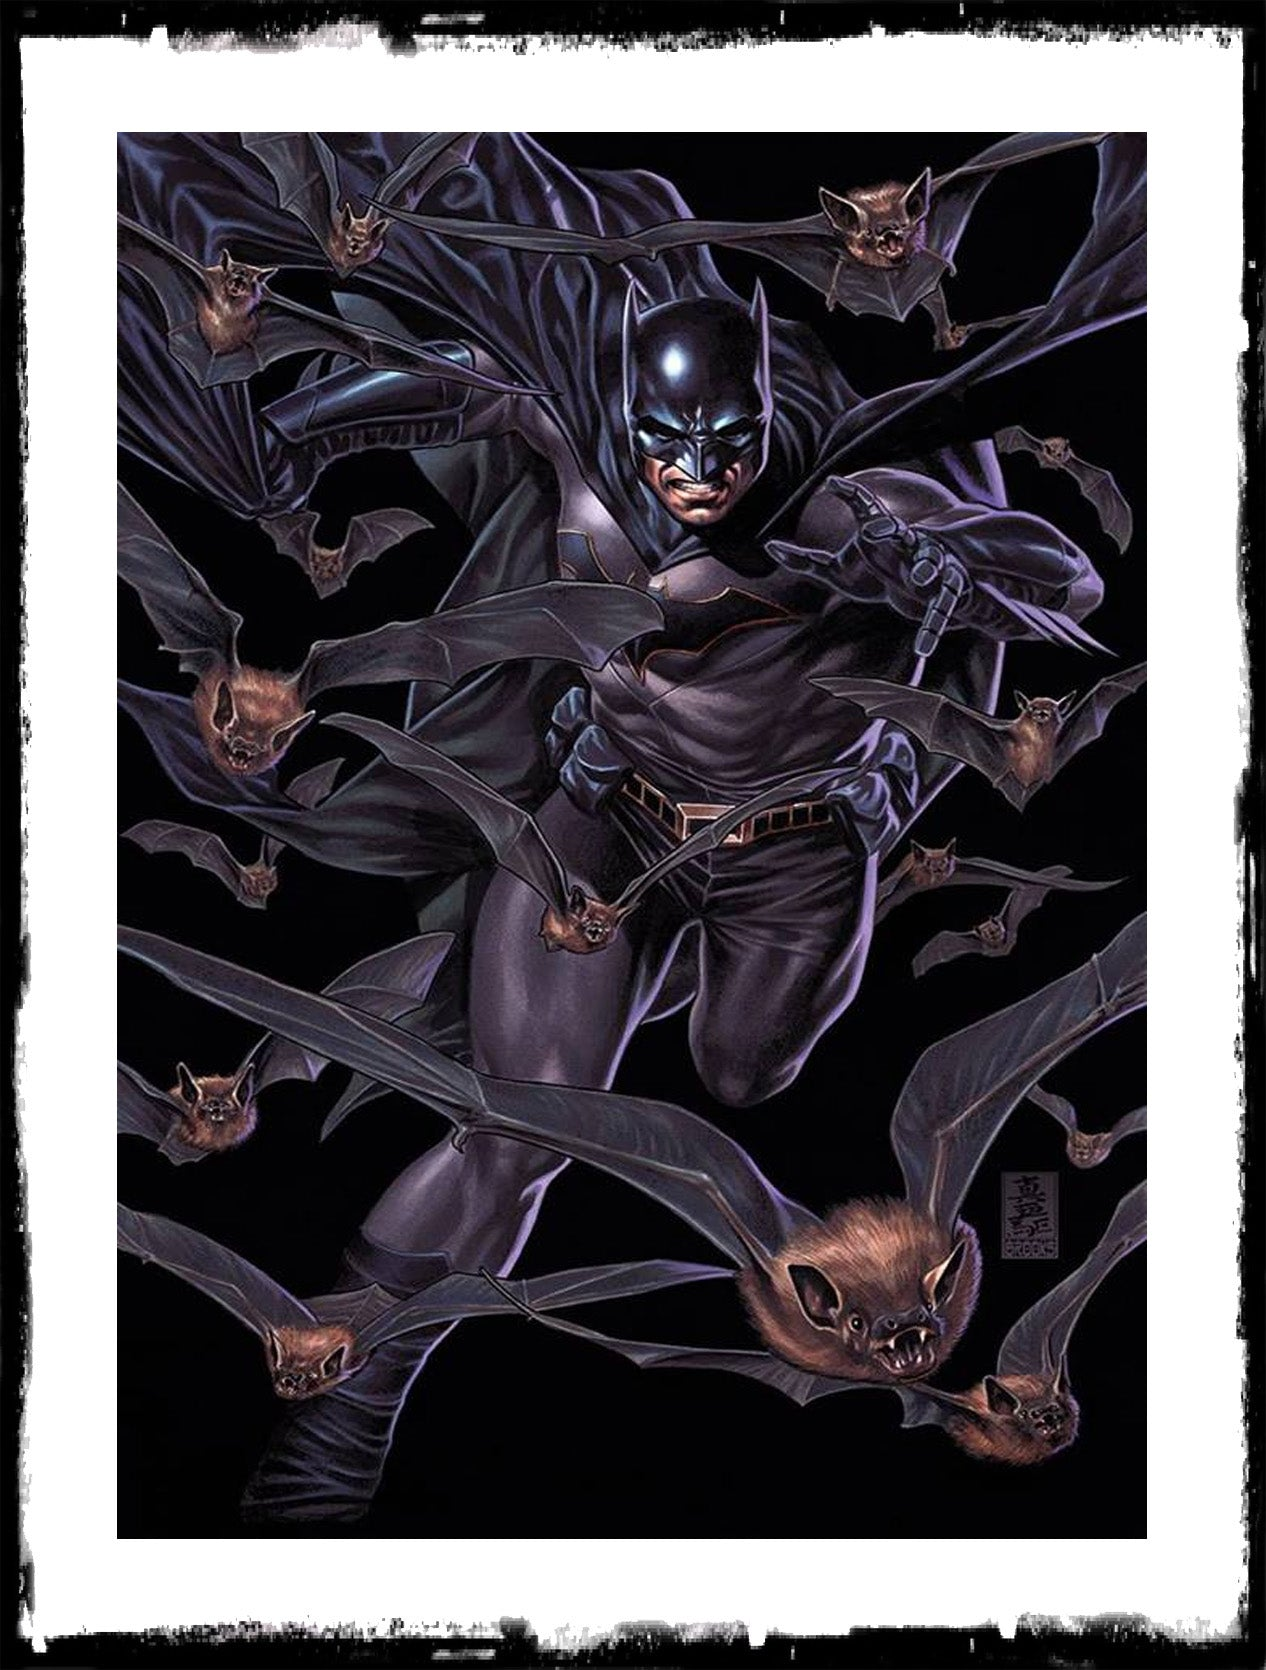 DETECTIVE COMICS - #985 (Mark Brooks Variant Cover)!